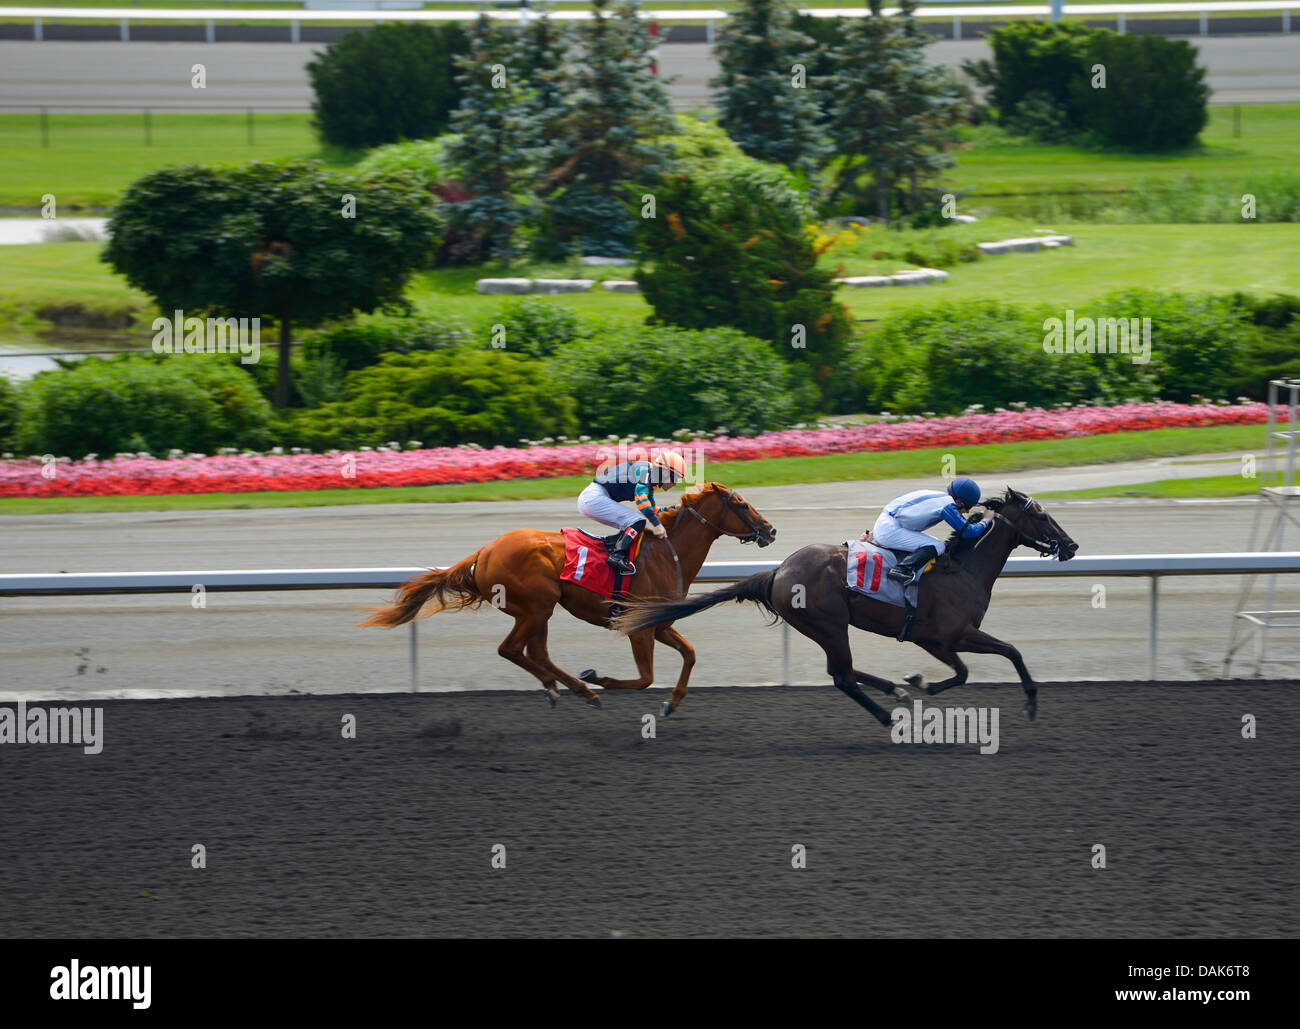 Regal Warning passing Csonka in race 4 of the Queens Plate at Woodbine Racetrack Toronto Canada - Stock Image